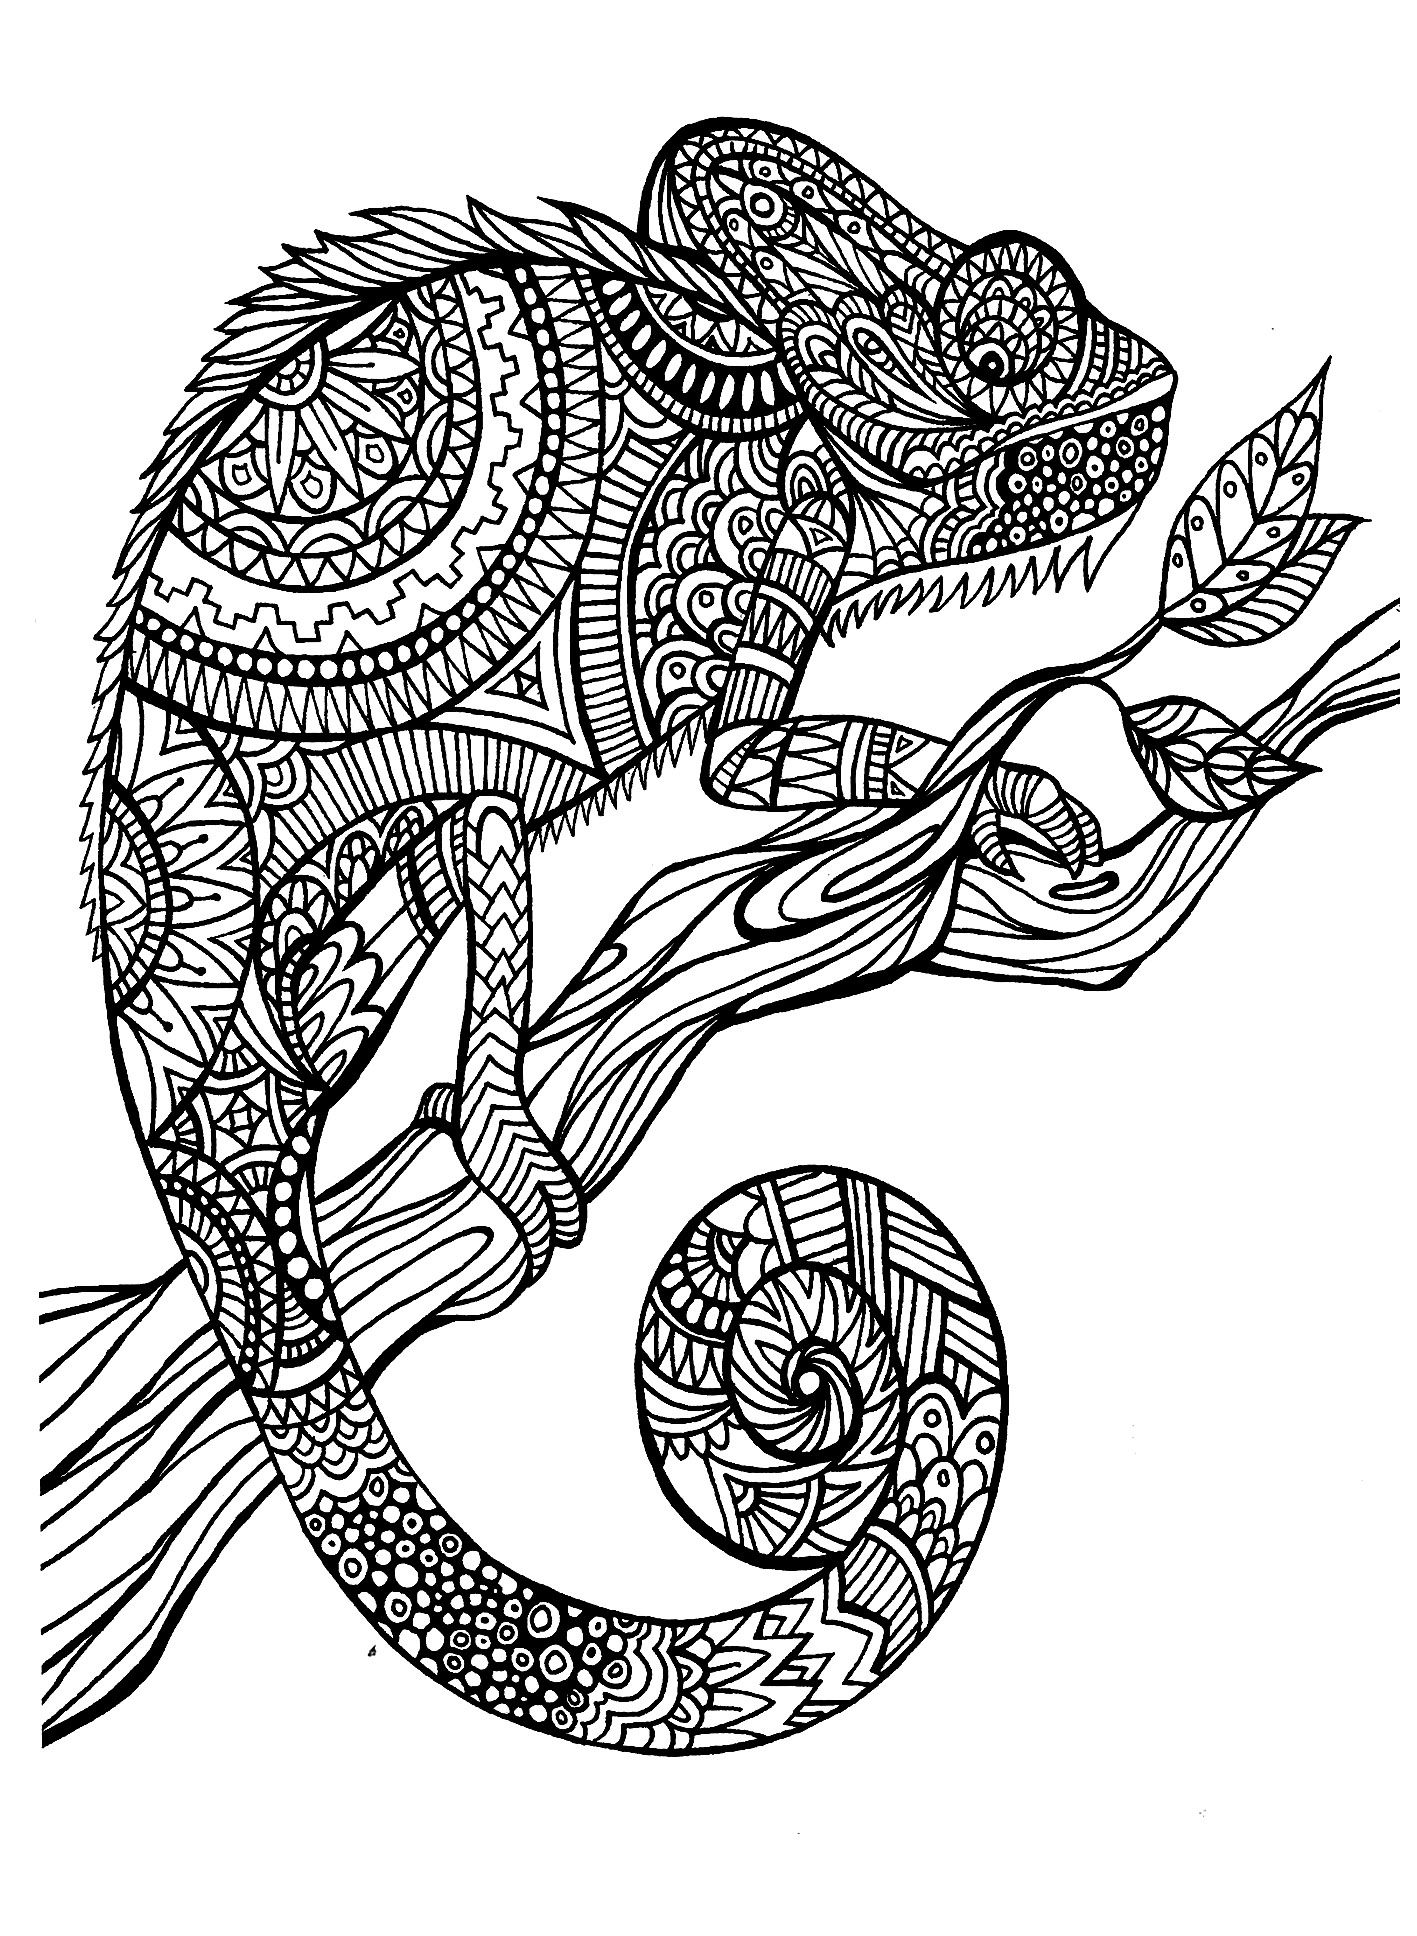 Pages to color for adults - Free Coloring Page Coloring Adult Cameleon Patterns A Magnificien Cameleon To Color